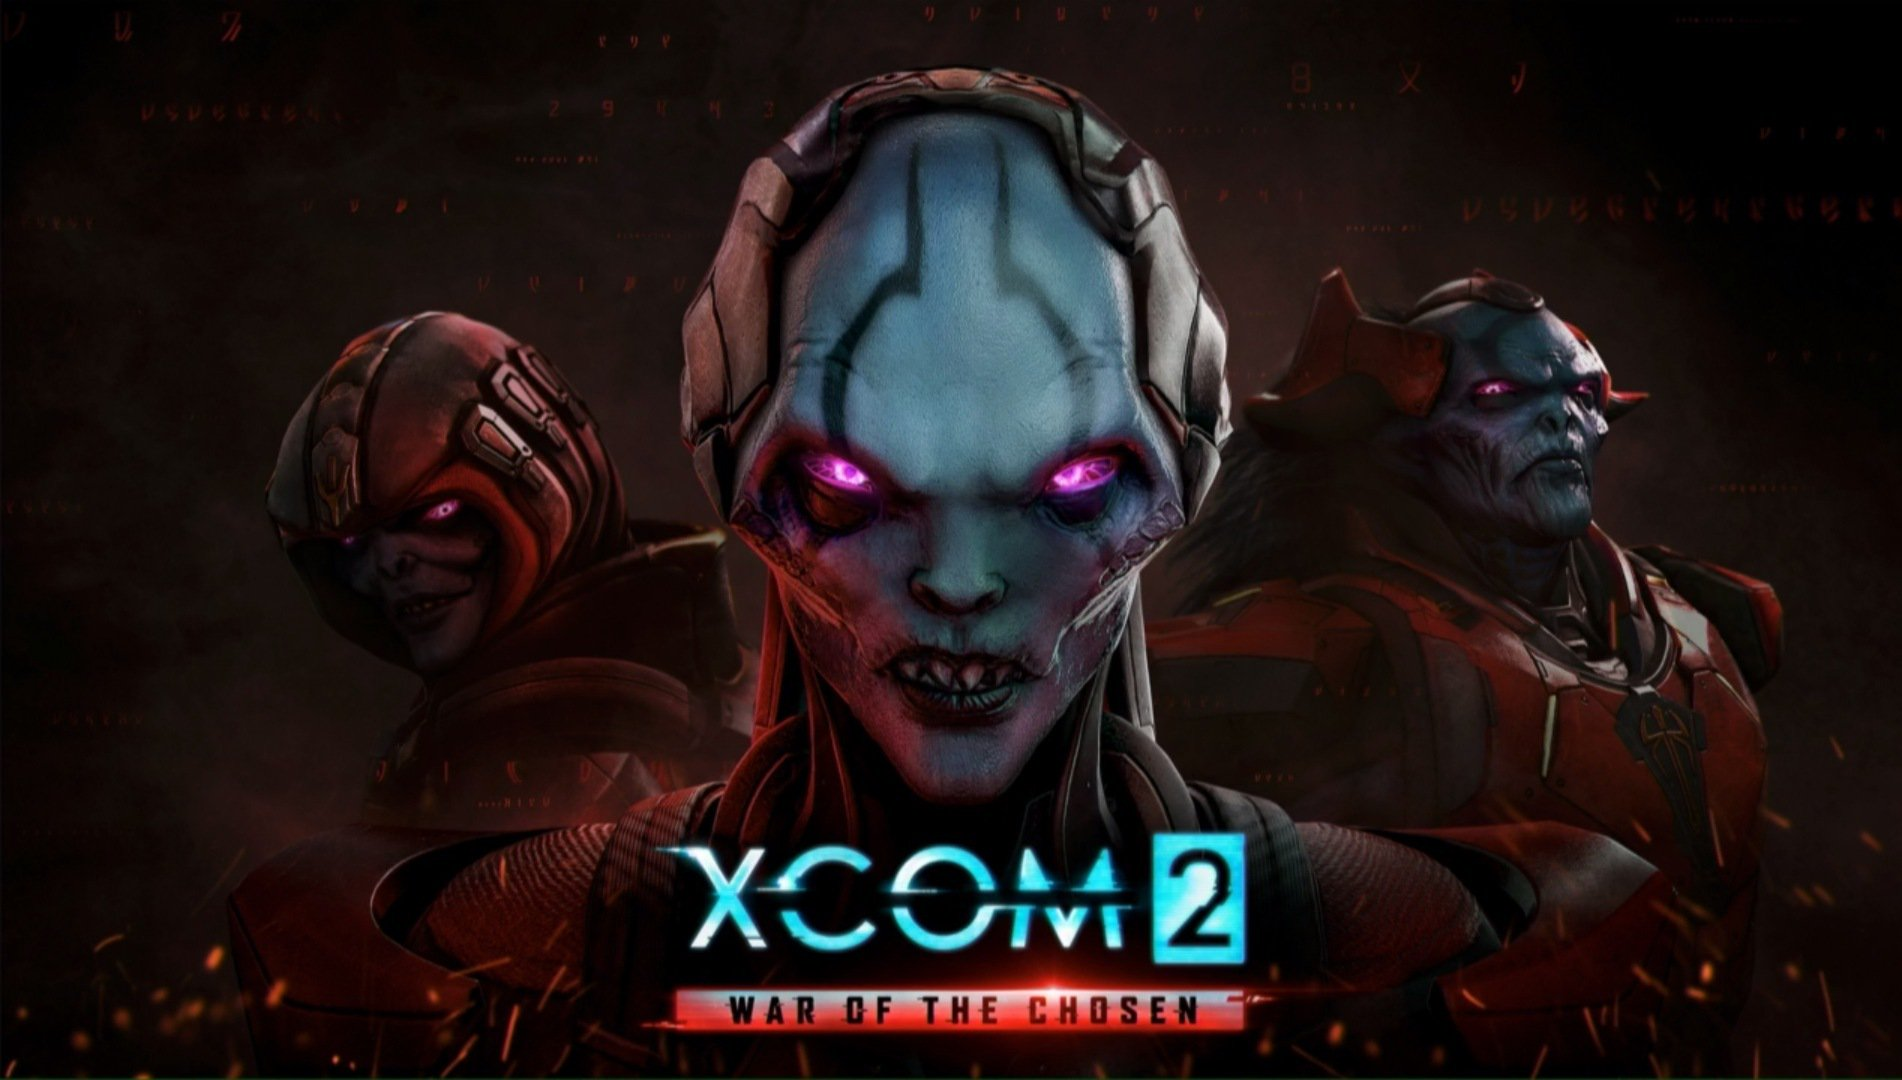 xcom 2 war of the chosen lands on august 29th on pc consoles. Black Bedroom Furniture Sets. Home Design Ideas